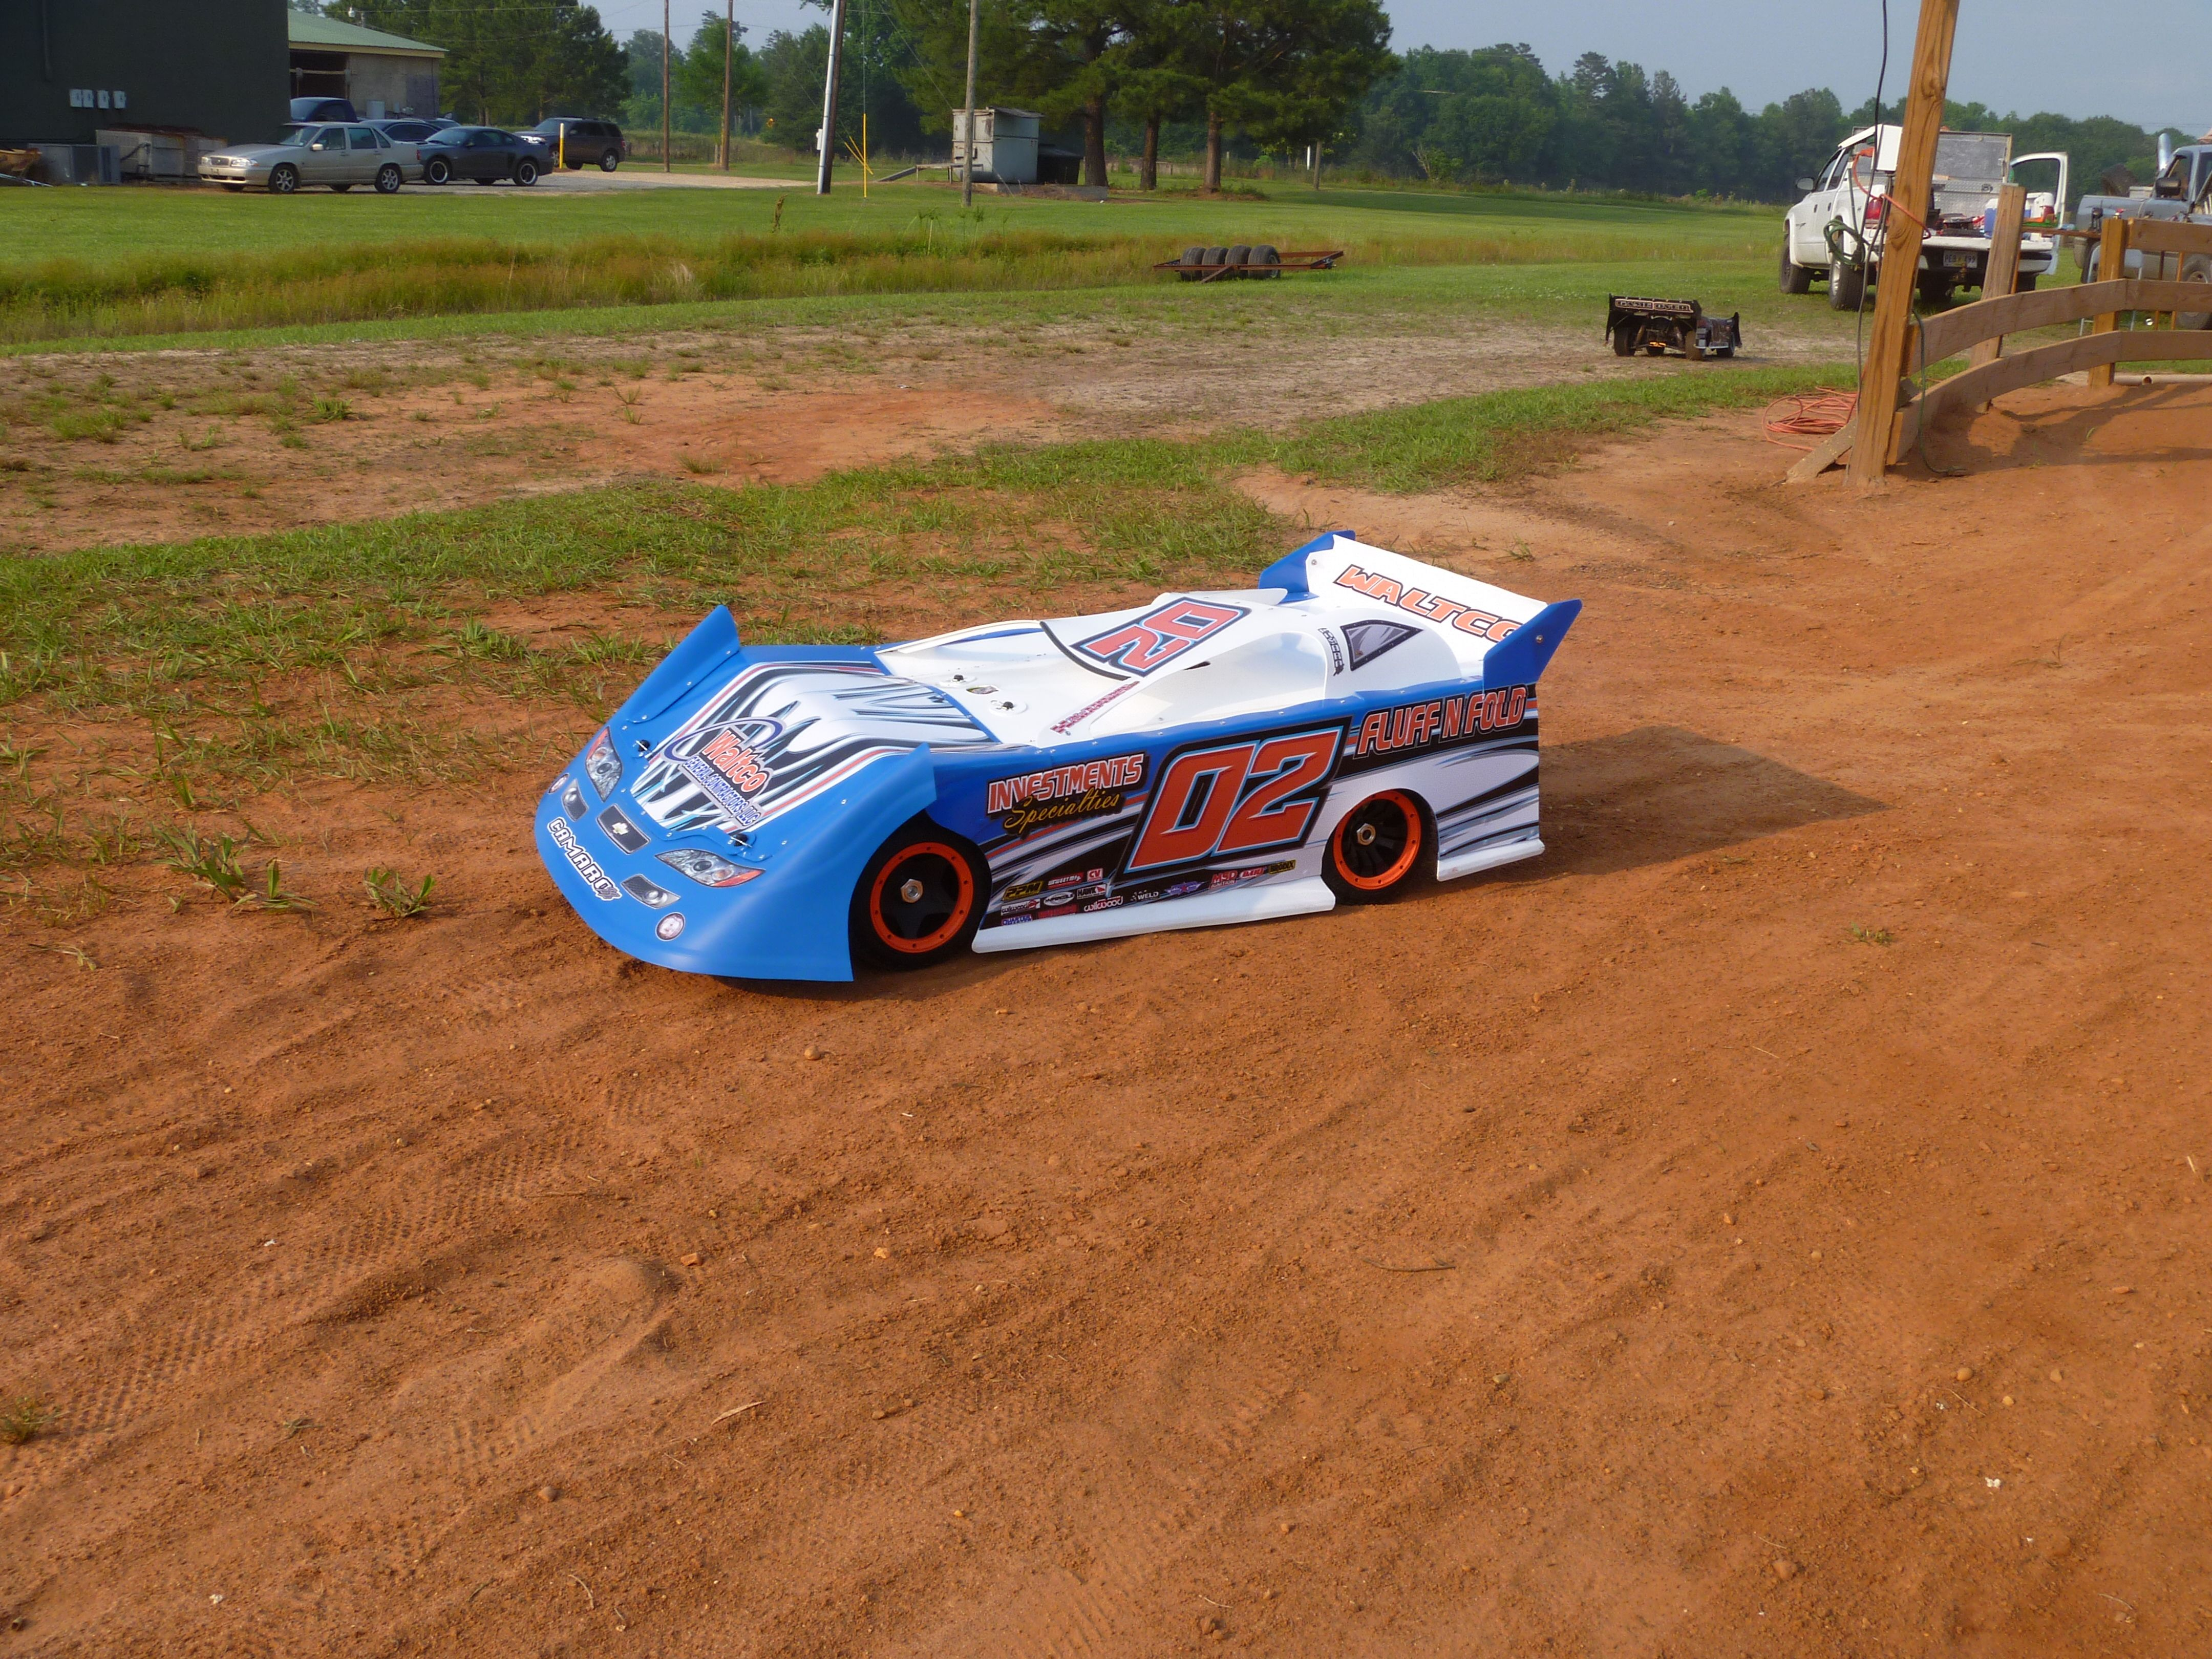 Rc Dirt Modified Race Car Rules - Thunder Valley Park